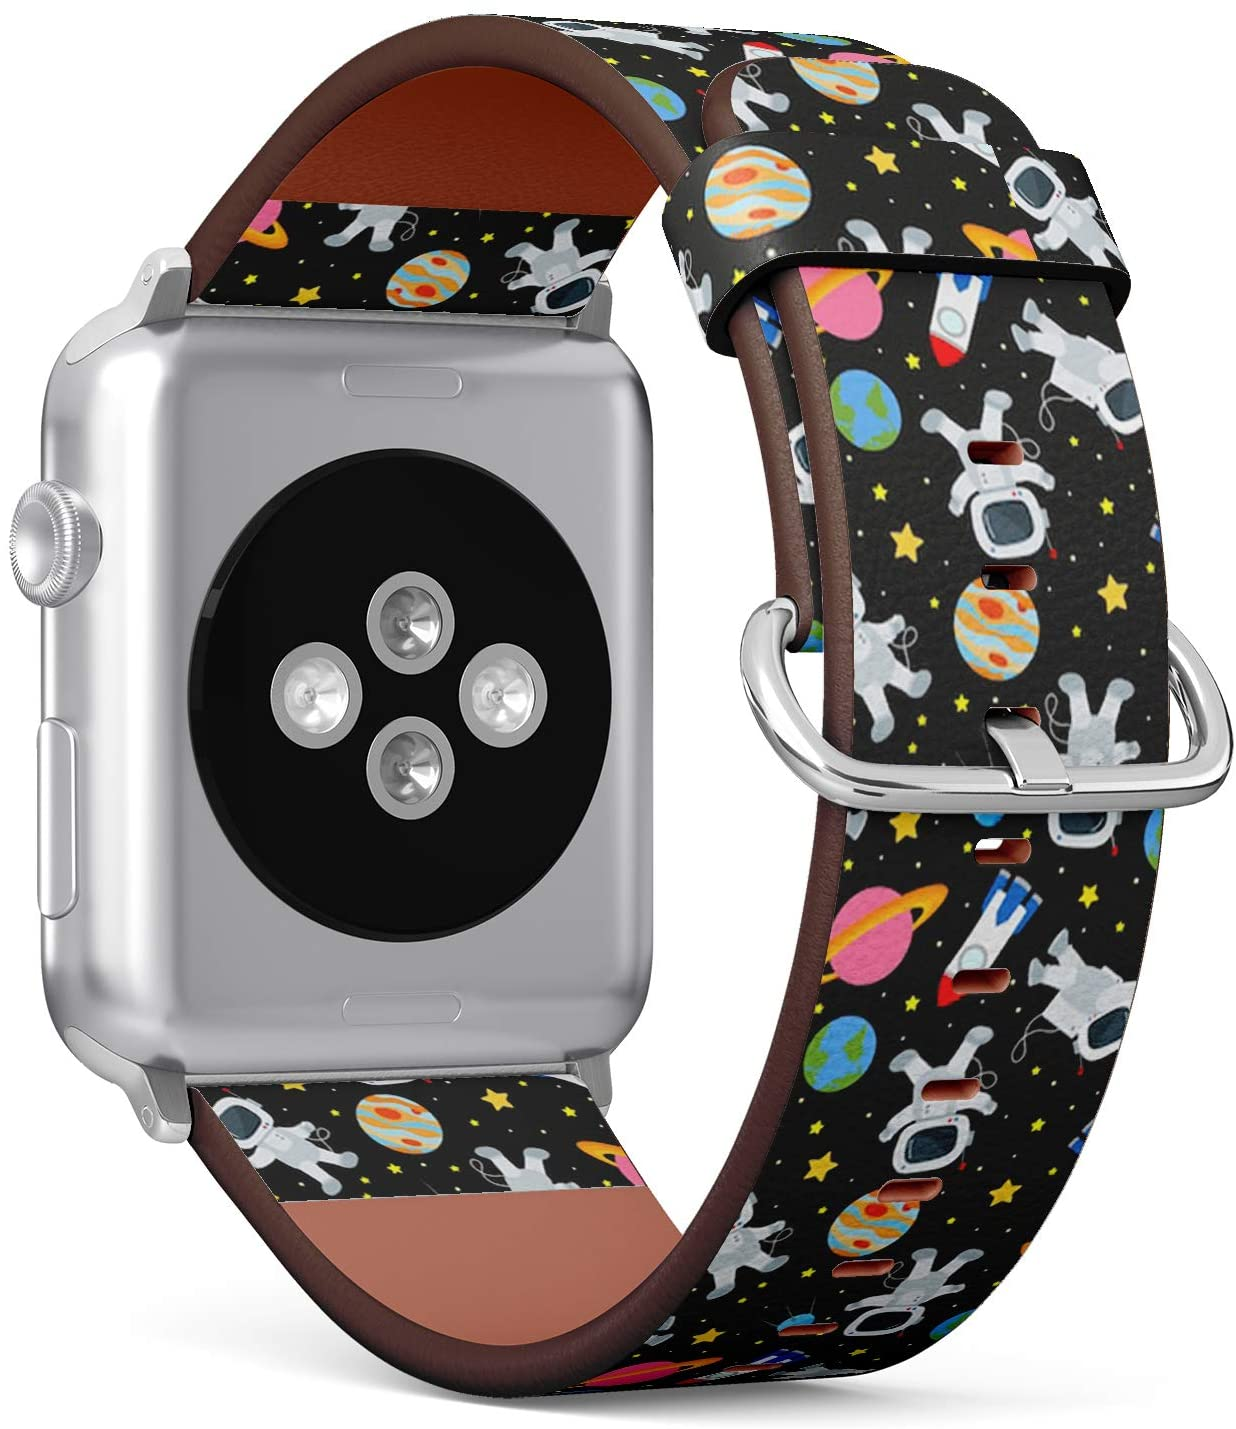 Compatible with Small Apple Watch 38mm & 40mm - (Series 5, 4, 3, 2, 1) Leather Watch Wrist Band Strap Bracelet with Stainless Steel Clasp and Adapters (On Theme Space)